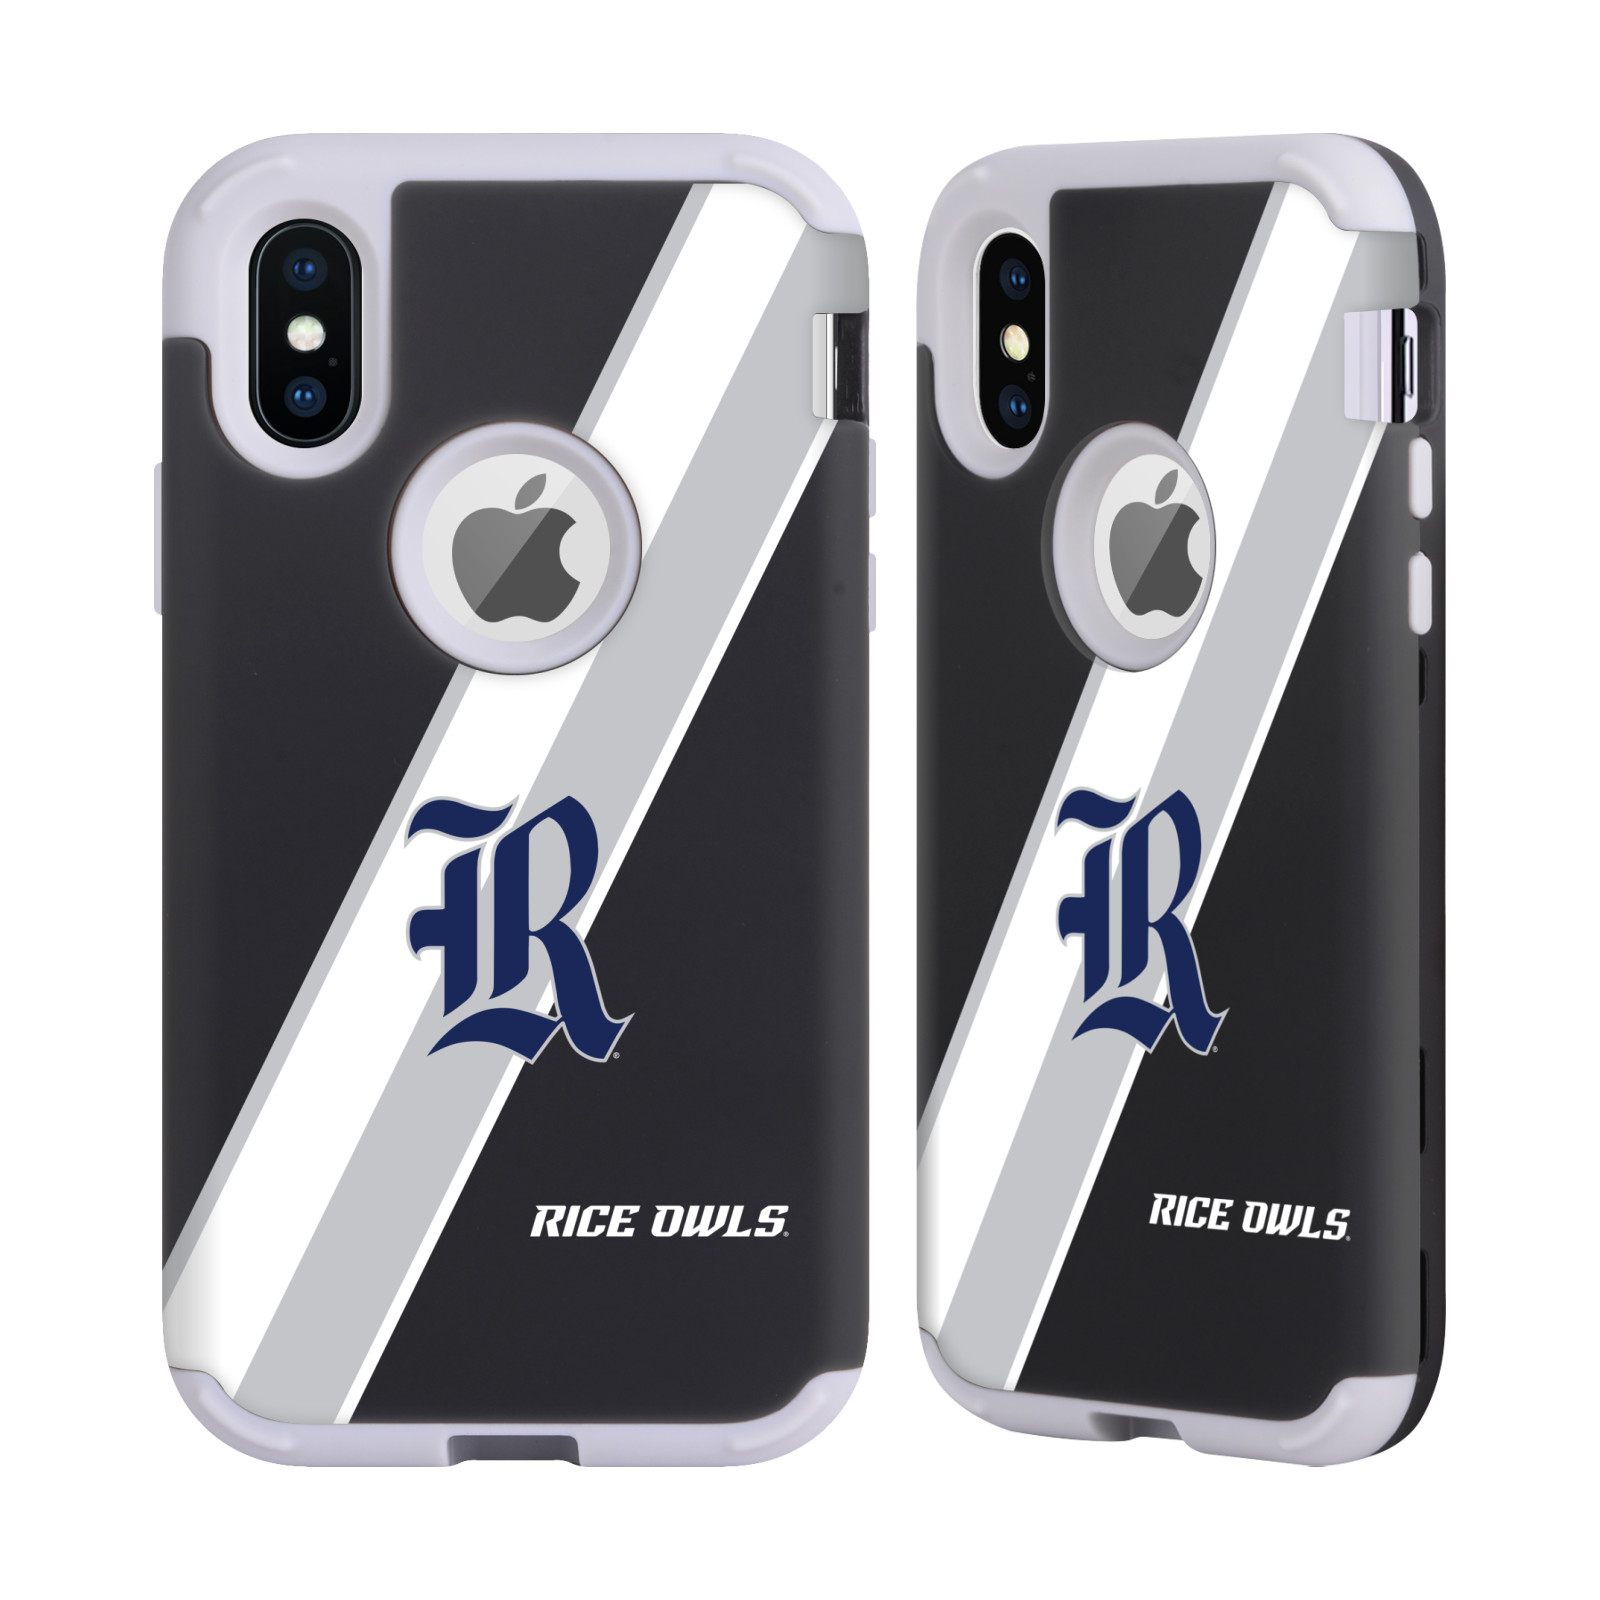 OFFICIAL-RICE-UNIVERSITY-2-GREY-SENTRY-CASE-FOR-APPLE-iPHONE-SAMSUNG-PHONES